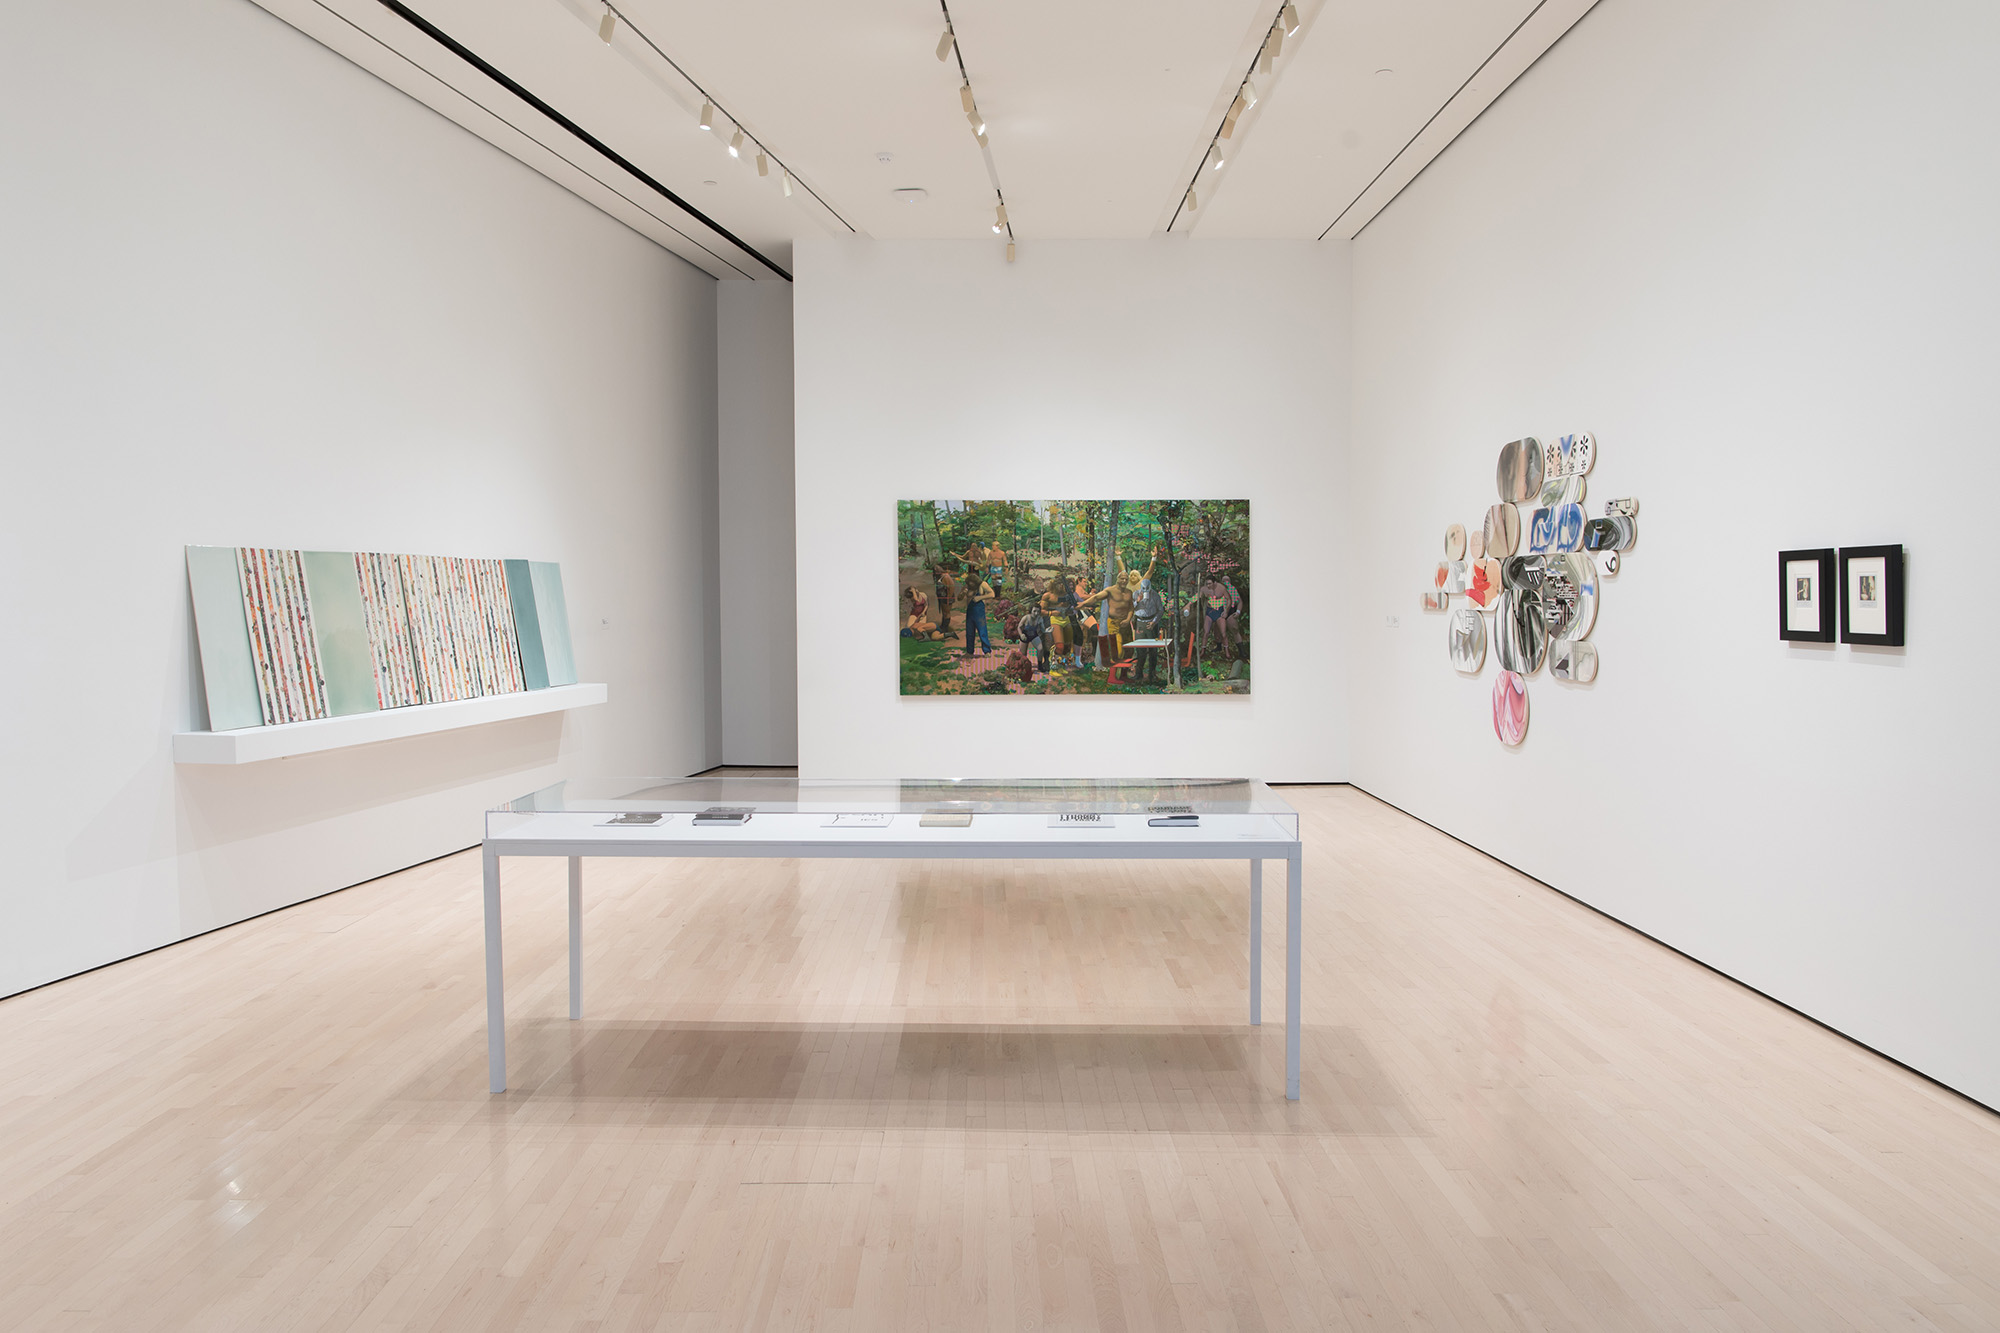 2018 MSU Department of Art, Art History, and Design Faculty Triennial, installation view at the MSU Broad, 2018. Photo: Eat Pomegranate Photography